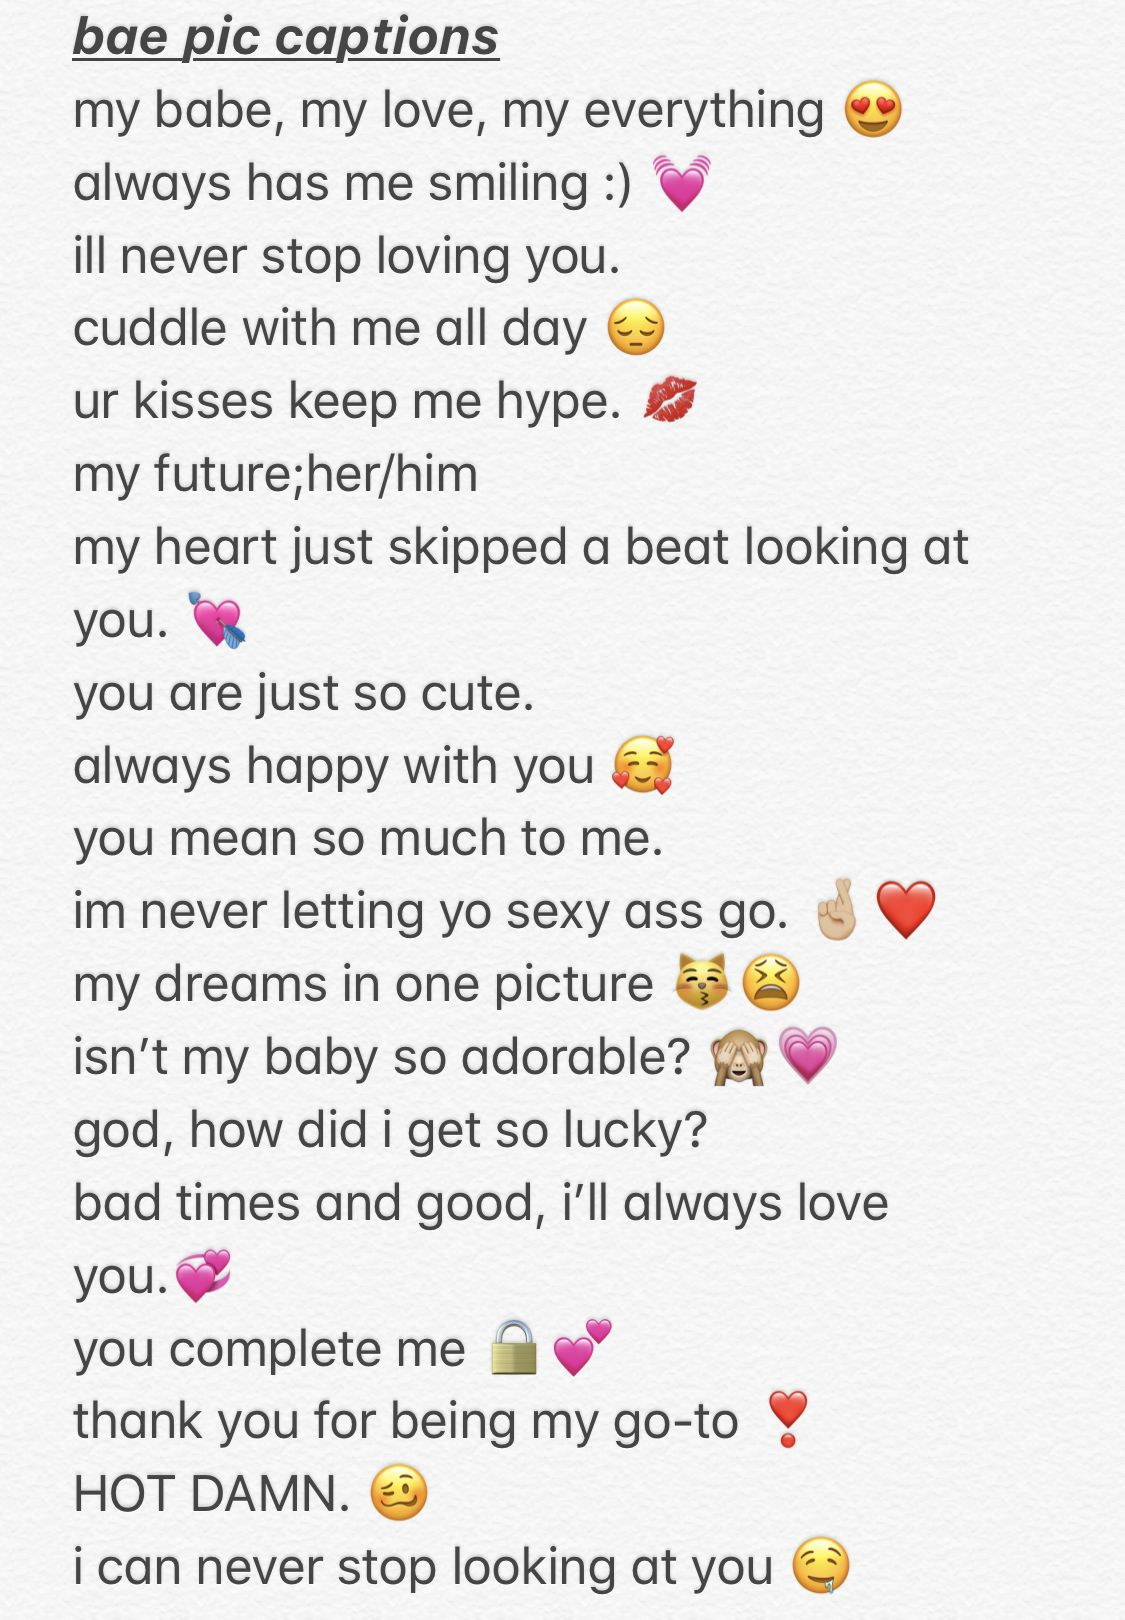 Cute Baby Captions For Instagram : captions, instagram, Instagram, Captions, Quotes, Captions,, Quotes,, Boyfriend